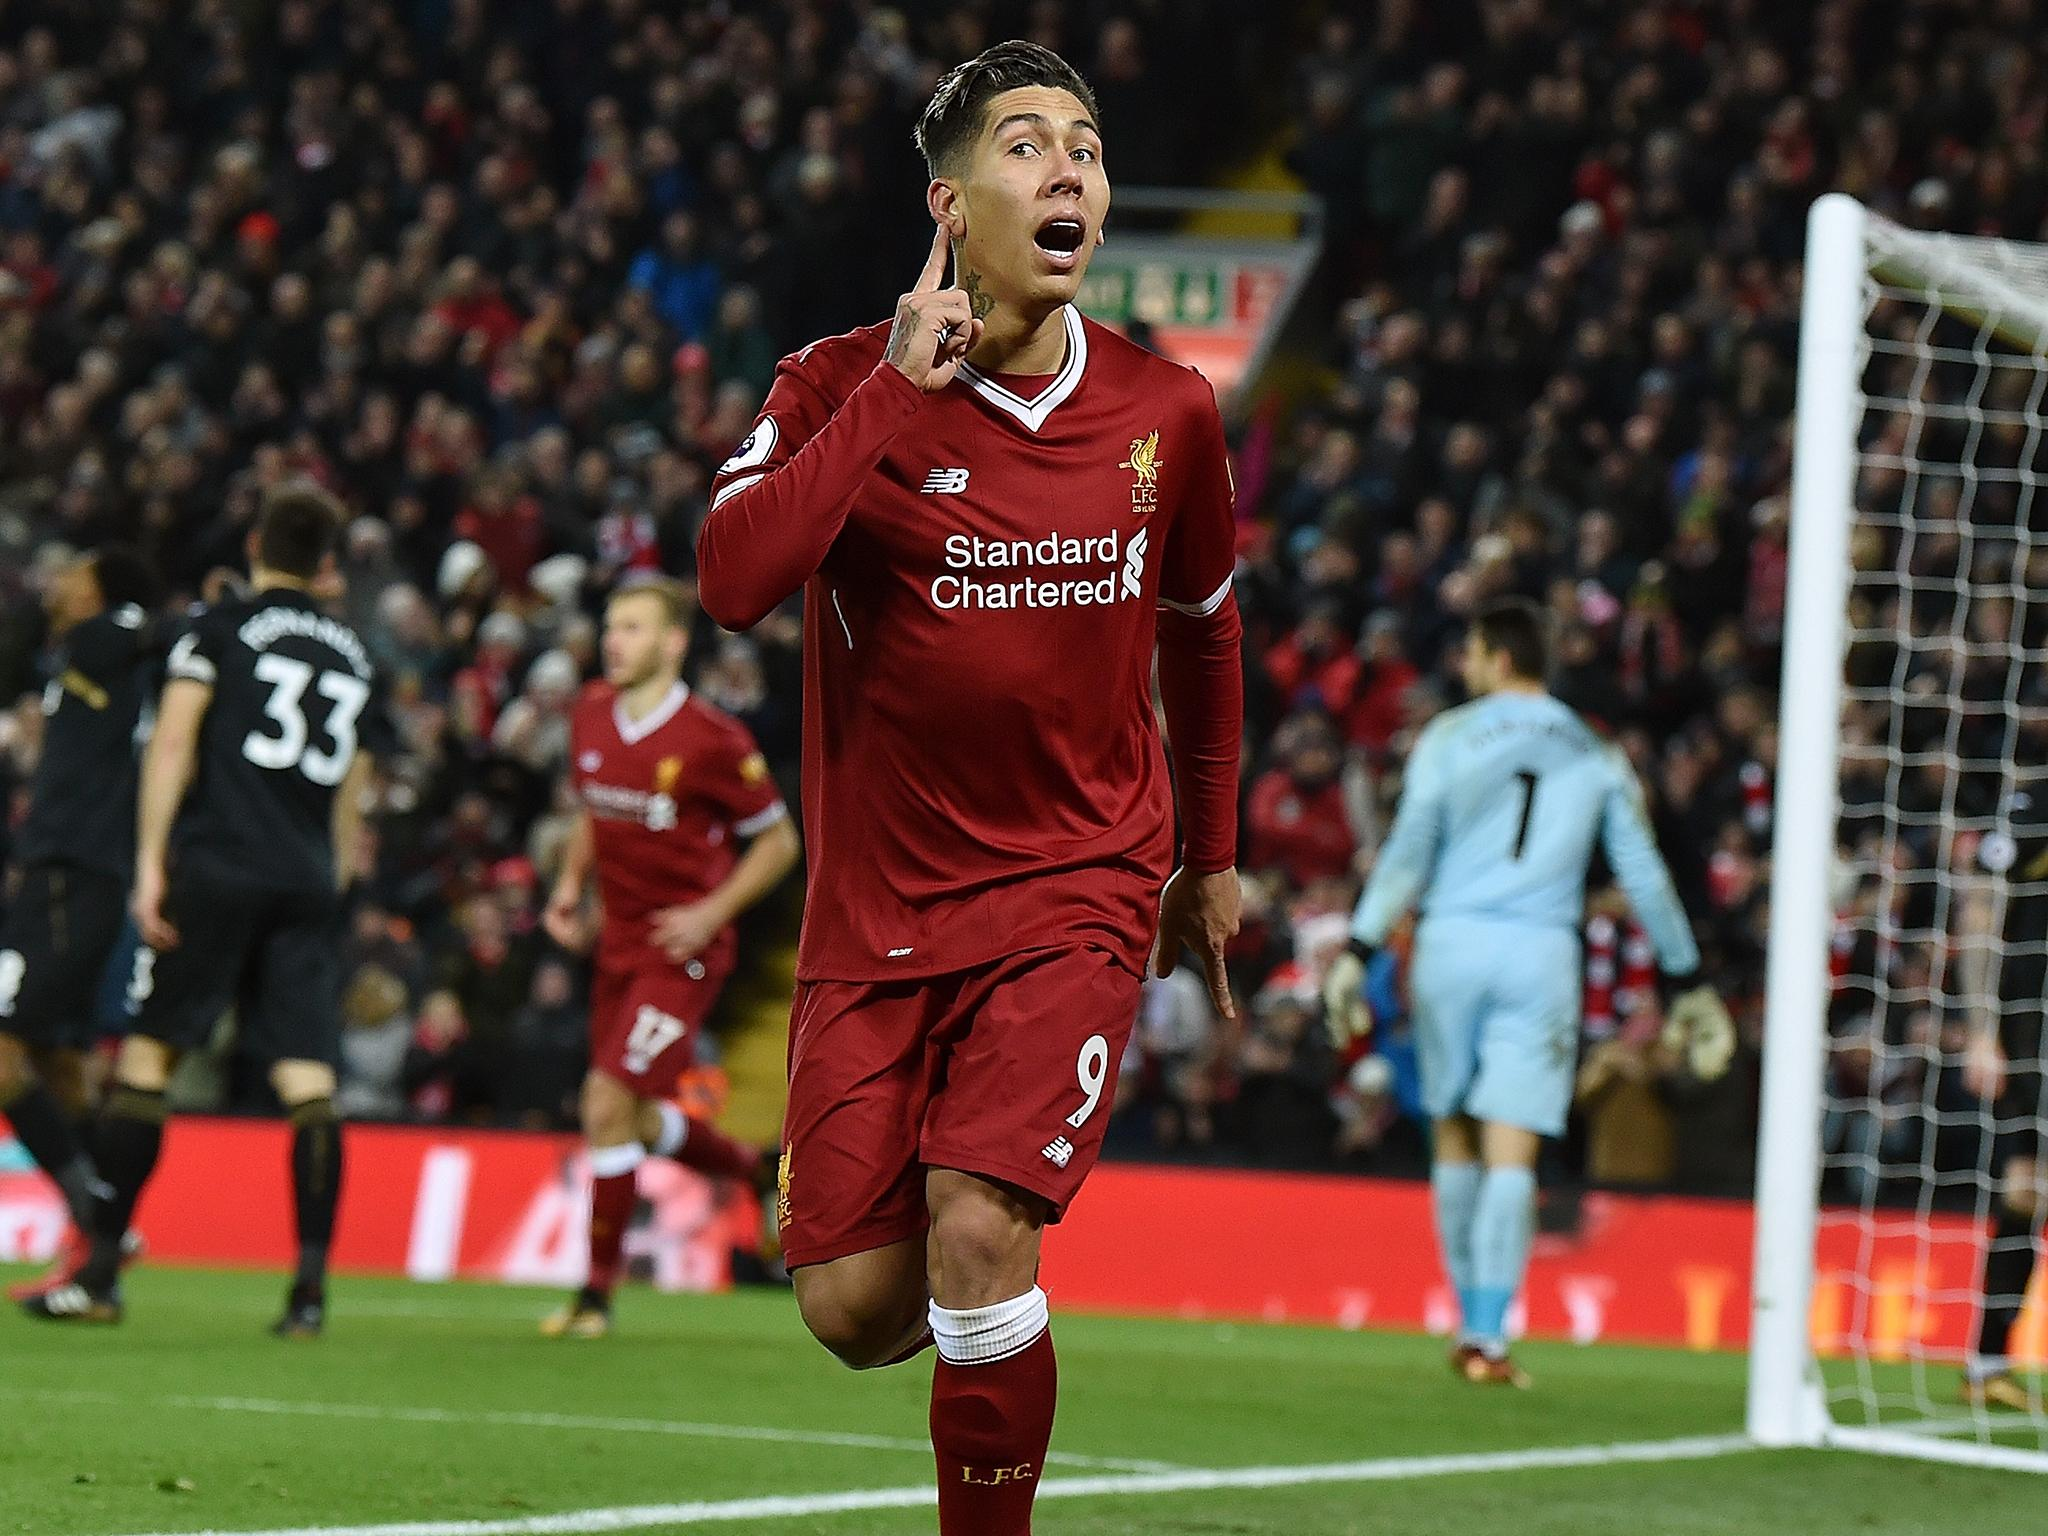 Liverpool vs Swansea player ratings: Roberto Firmino pick of the bunch as Reds run riot